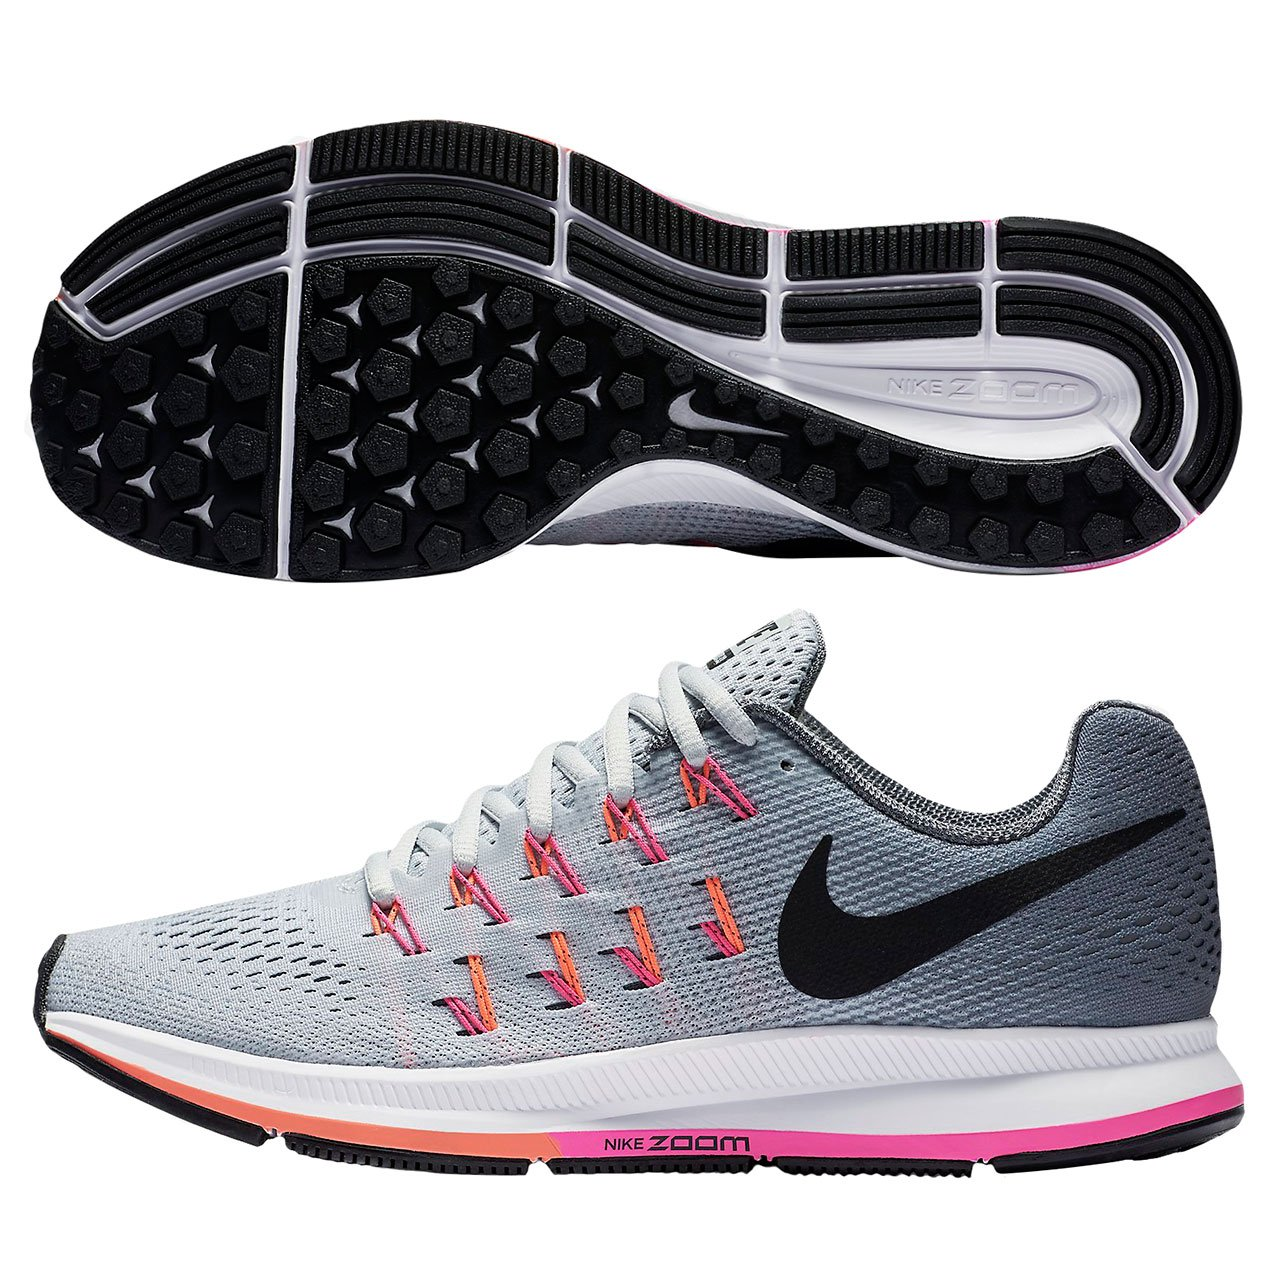 Comprimido recuperación Demon Play  Buy Nike Women's Air Zoom Pegasus 33 (Wide) Running Shoe  Platinum/Black/Grey/Pink Blast Size 8. 5 Wide US at Amazon.in